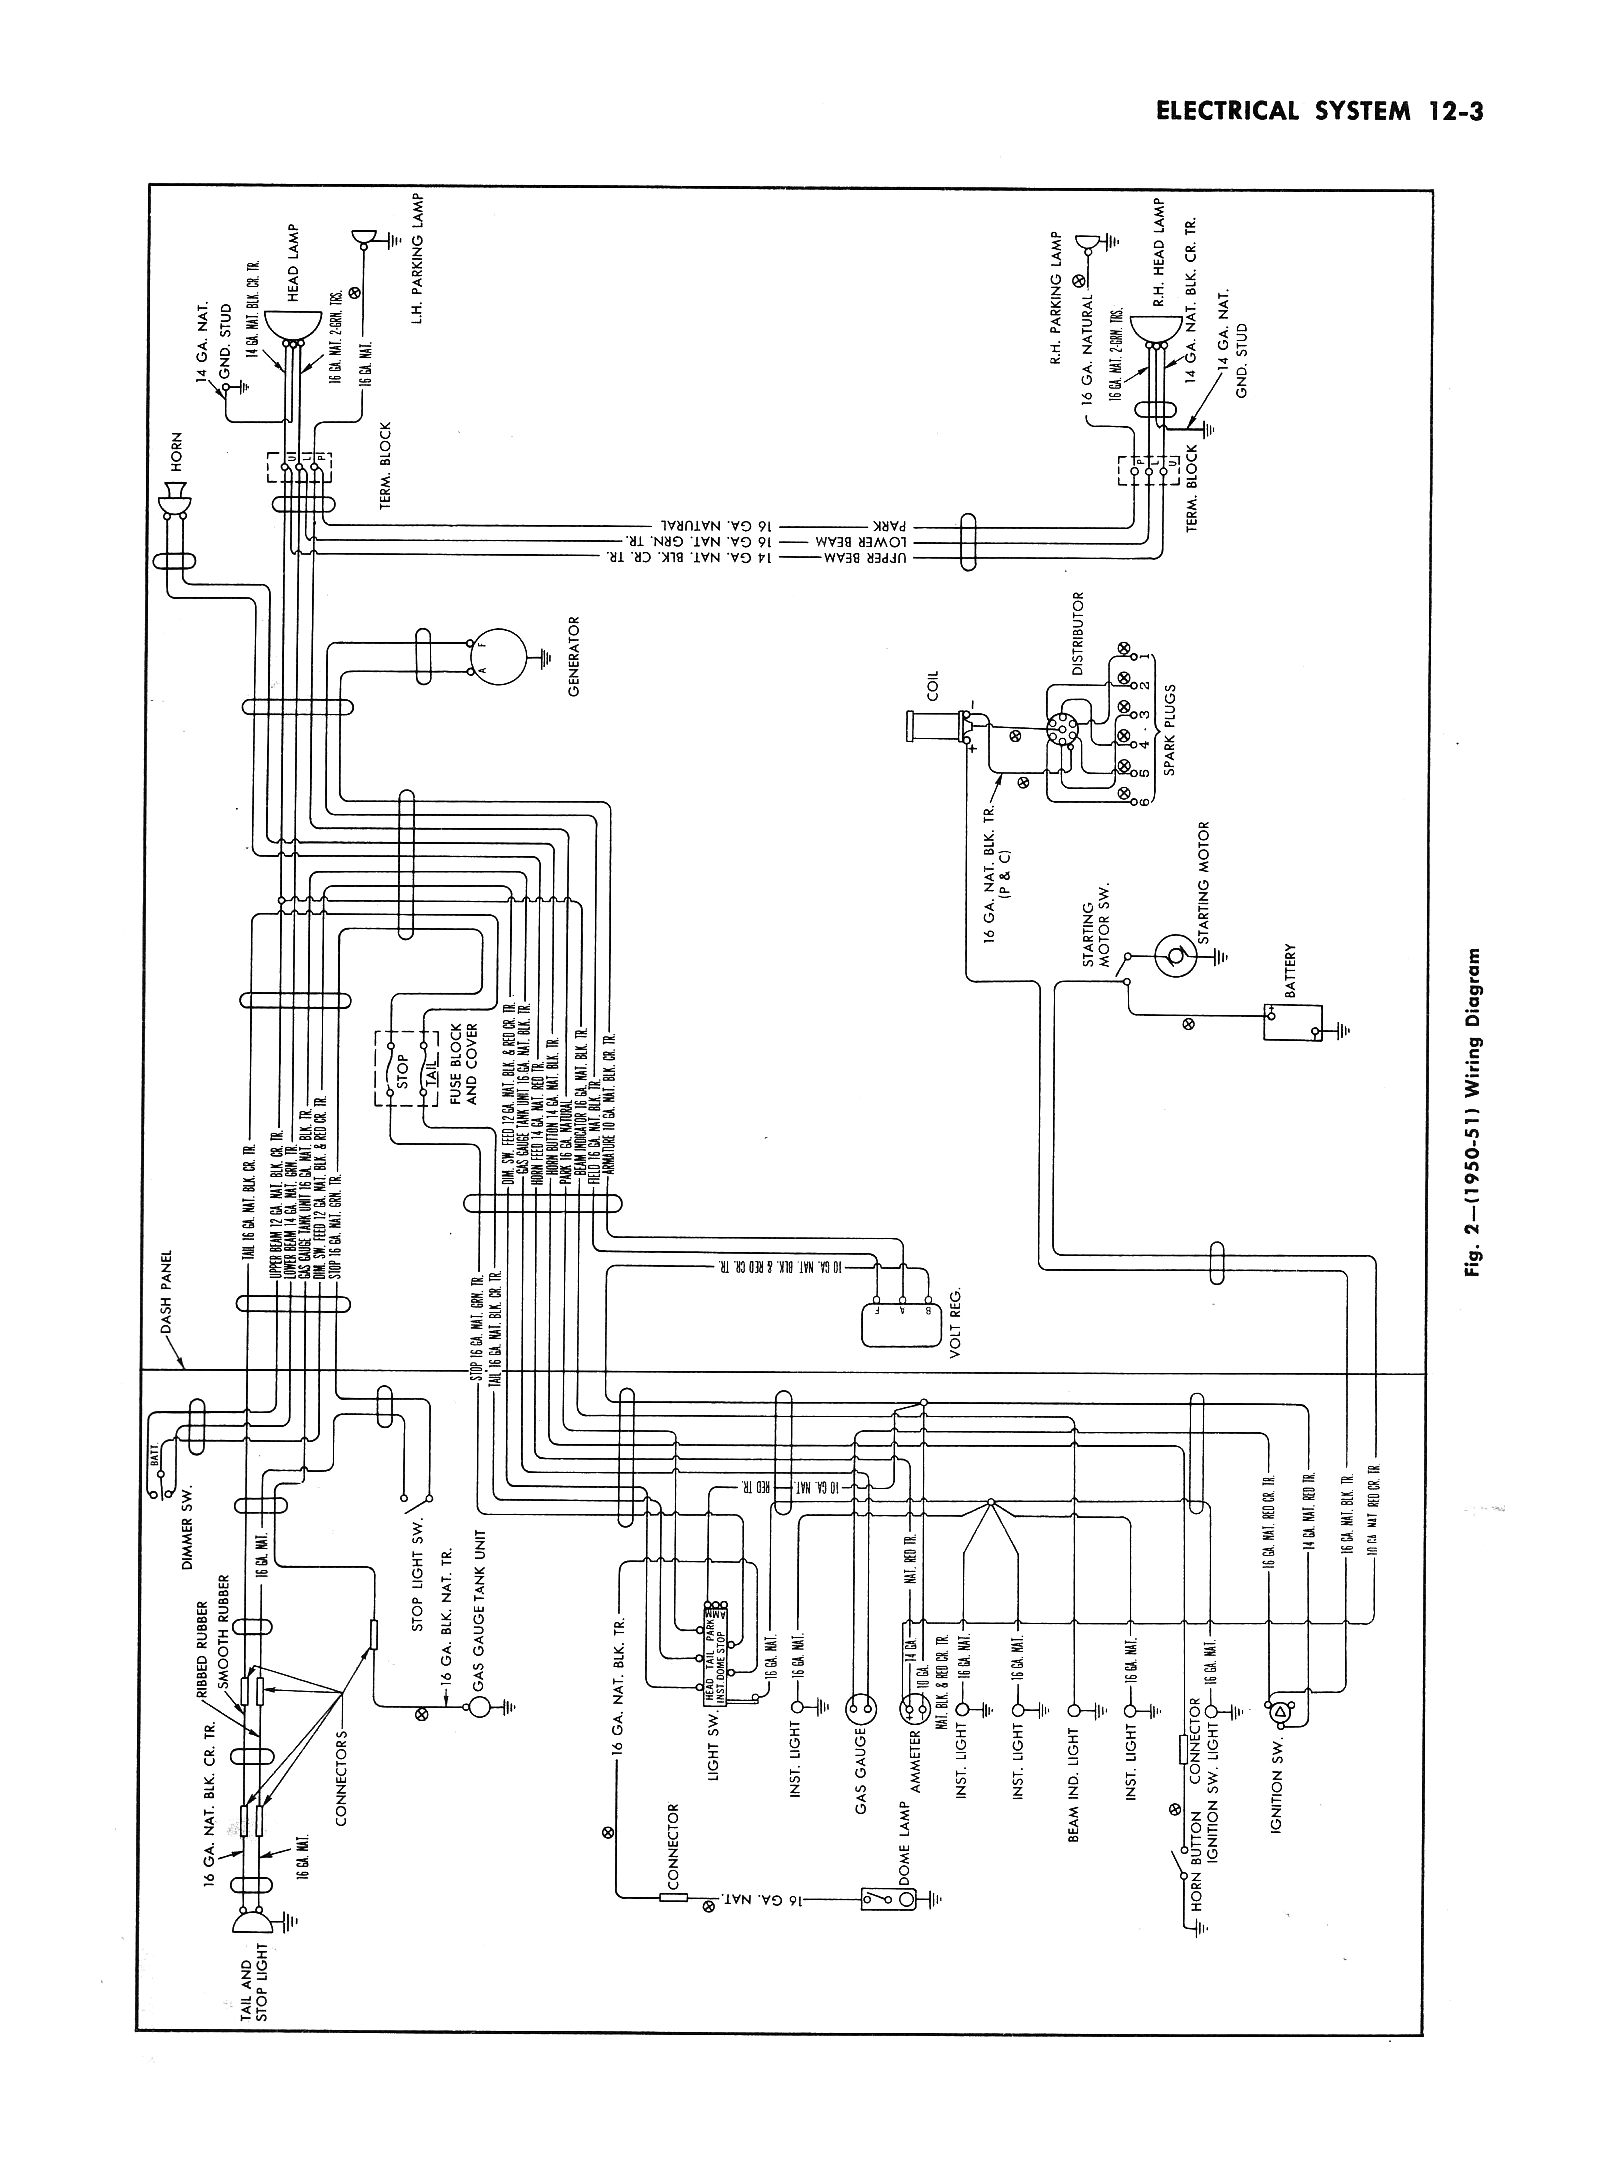 delco alternator wiring diagram 2003 chevy